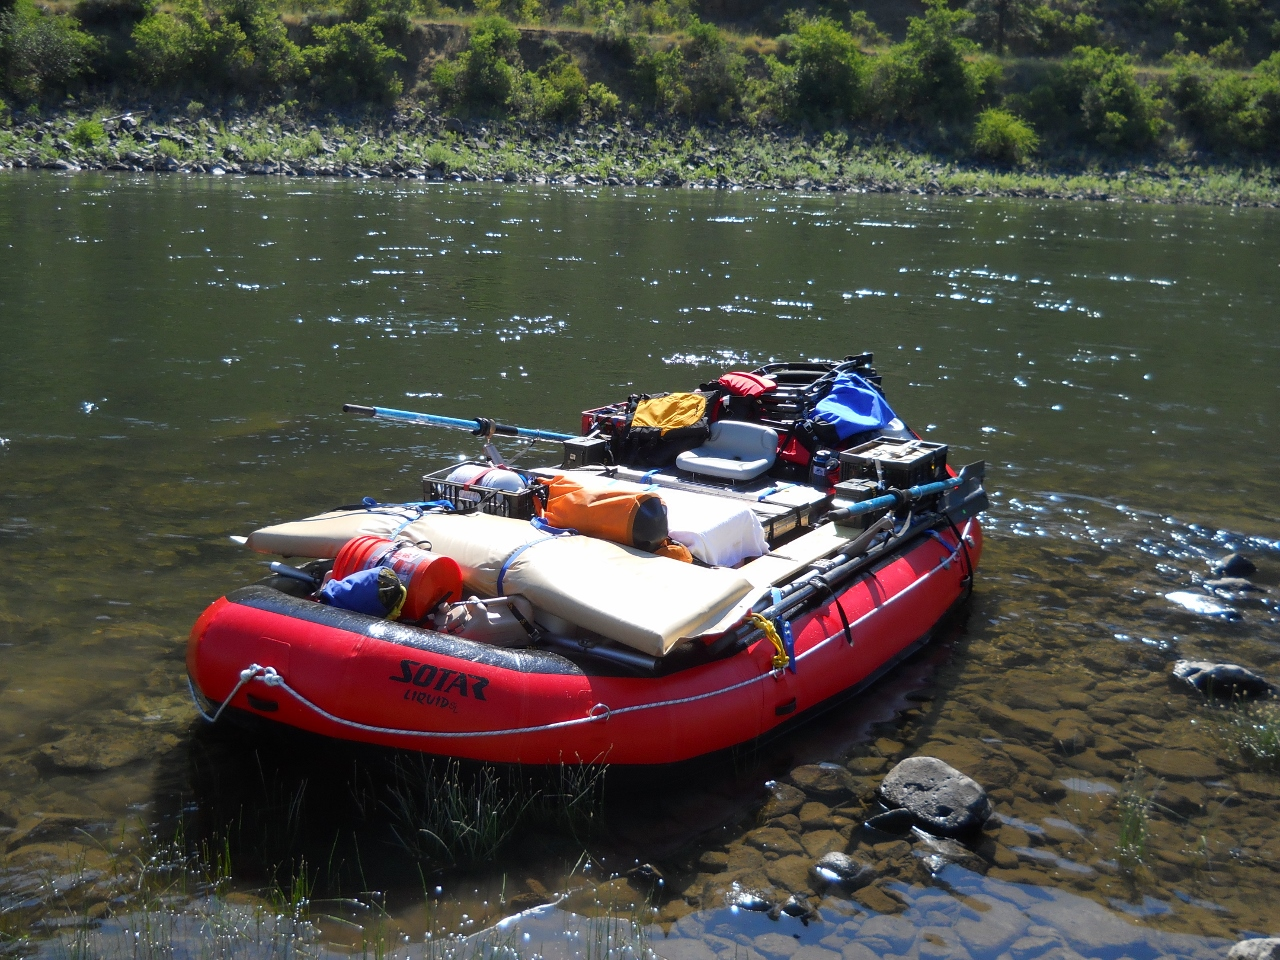 Click image for larger version  Name:The Gear Boat.jpg Views:611 Size:844.8 KB ID:6799